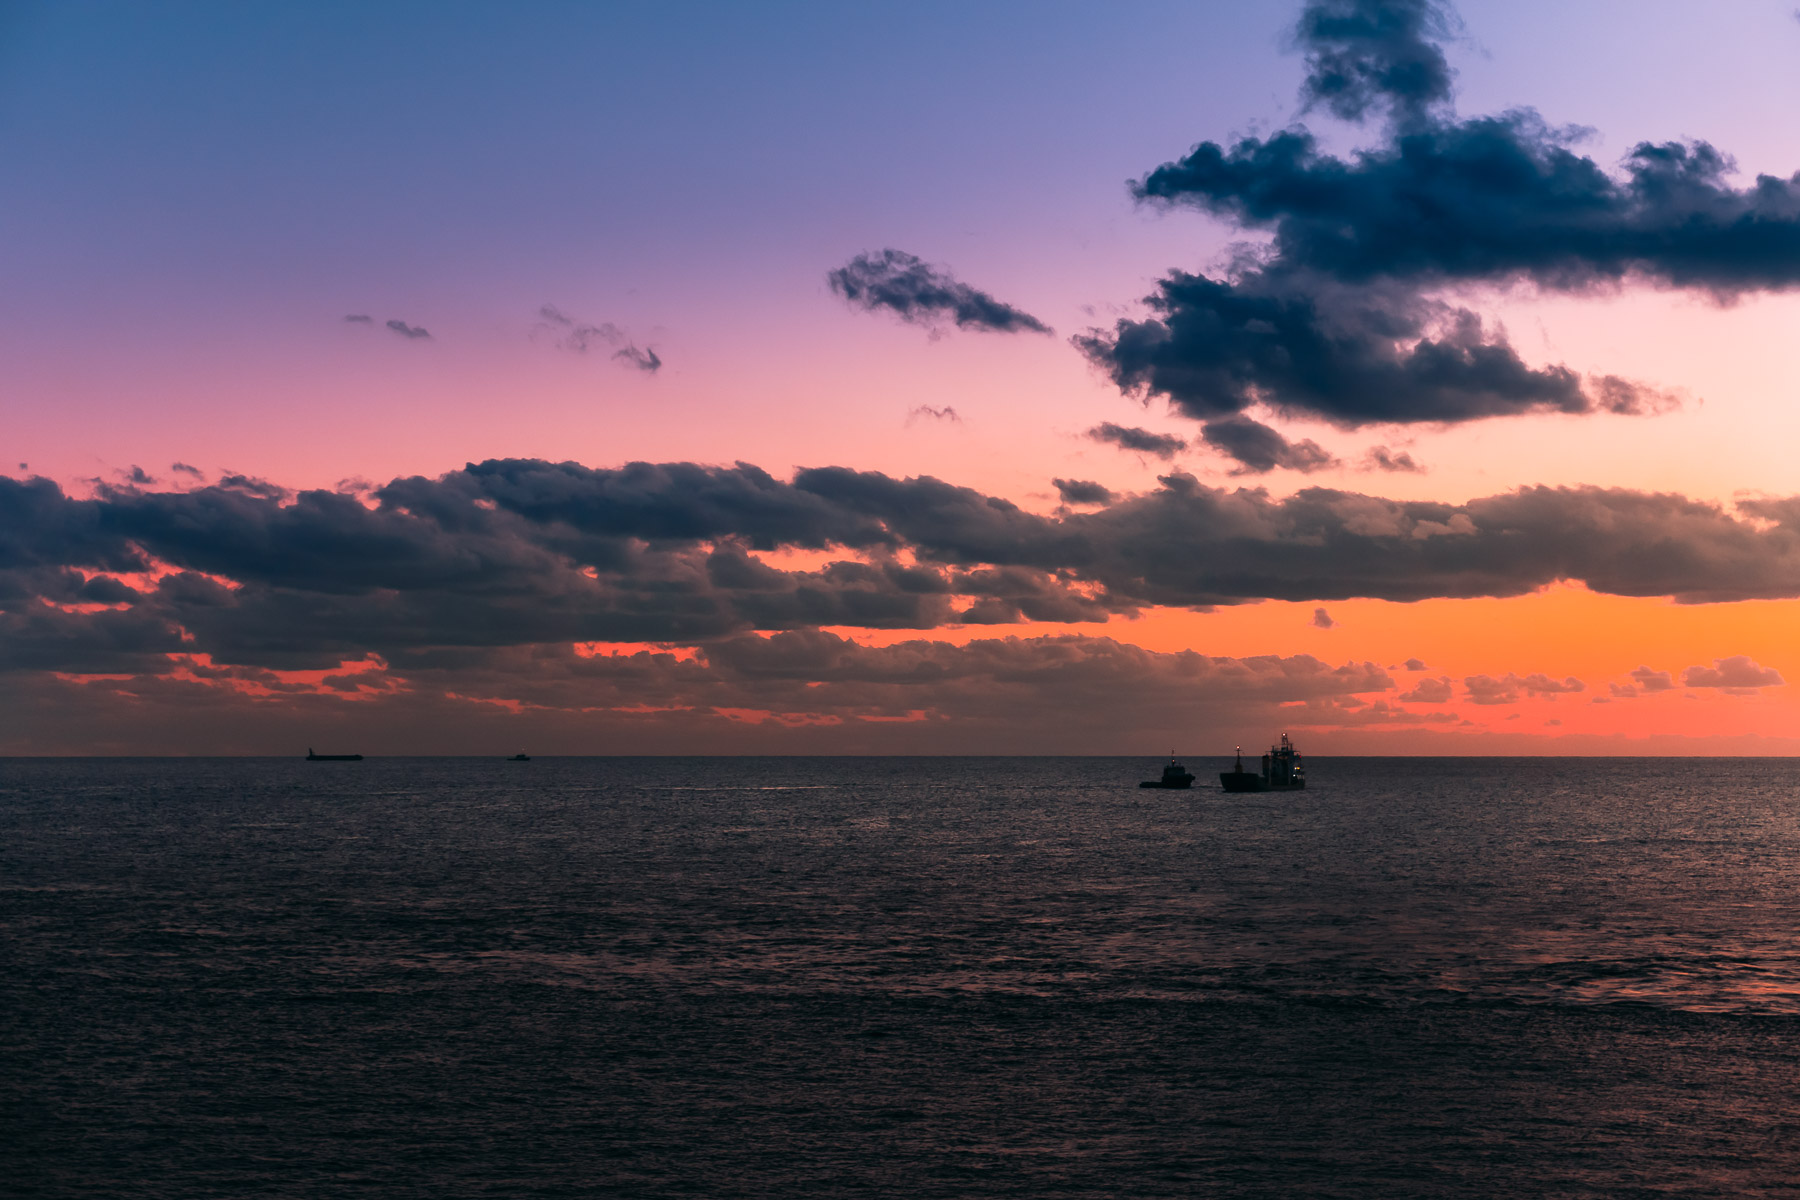 The sun sets on boats off the shore of Grand Cayman.